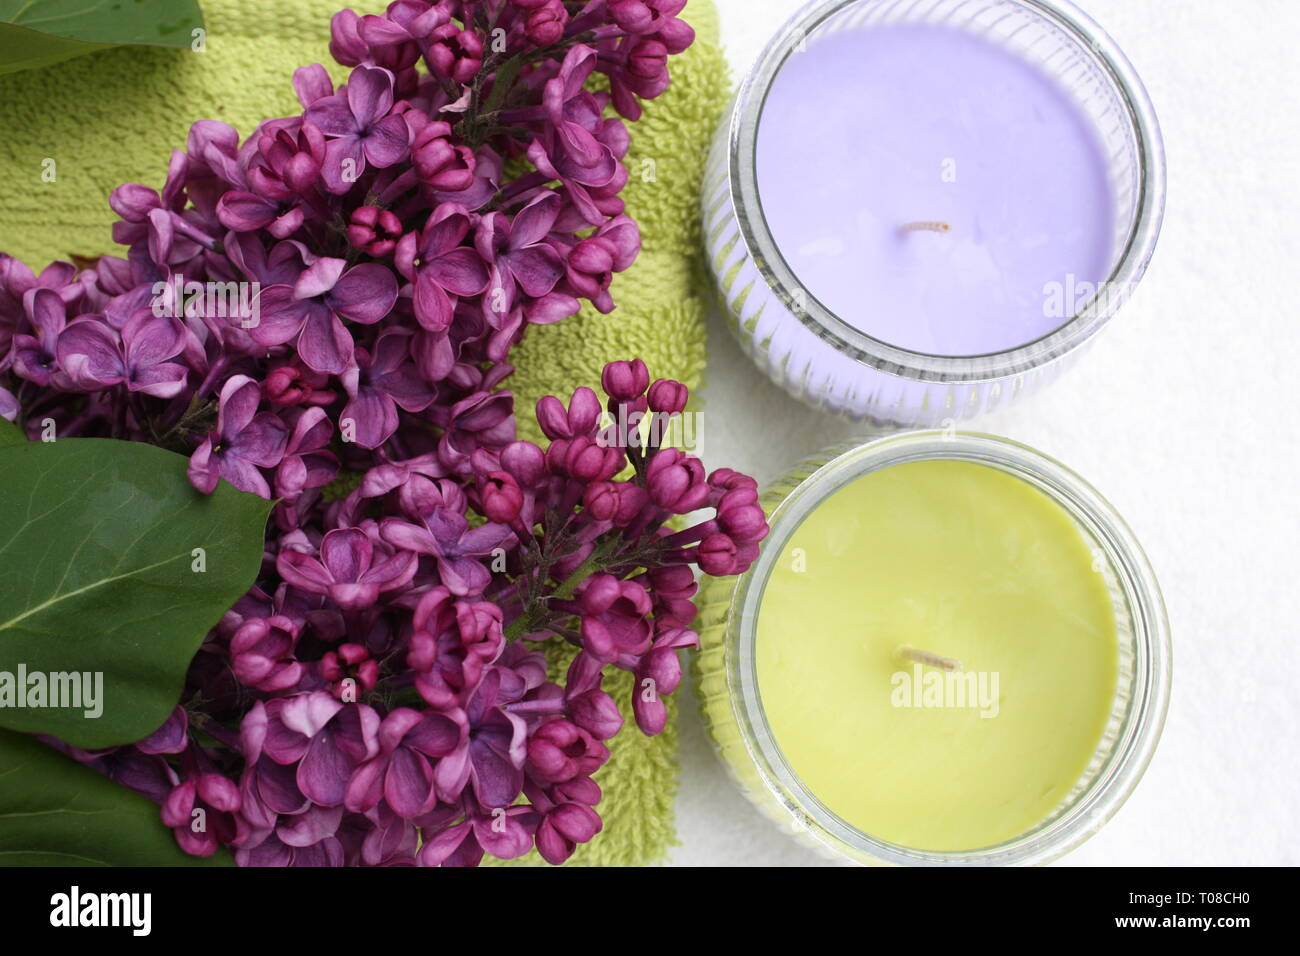 Purple syringa flowers with candles Stock Photo